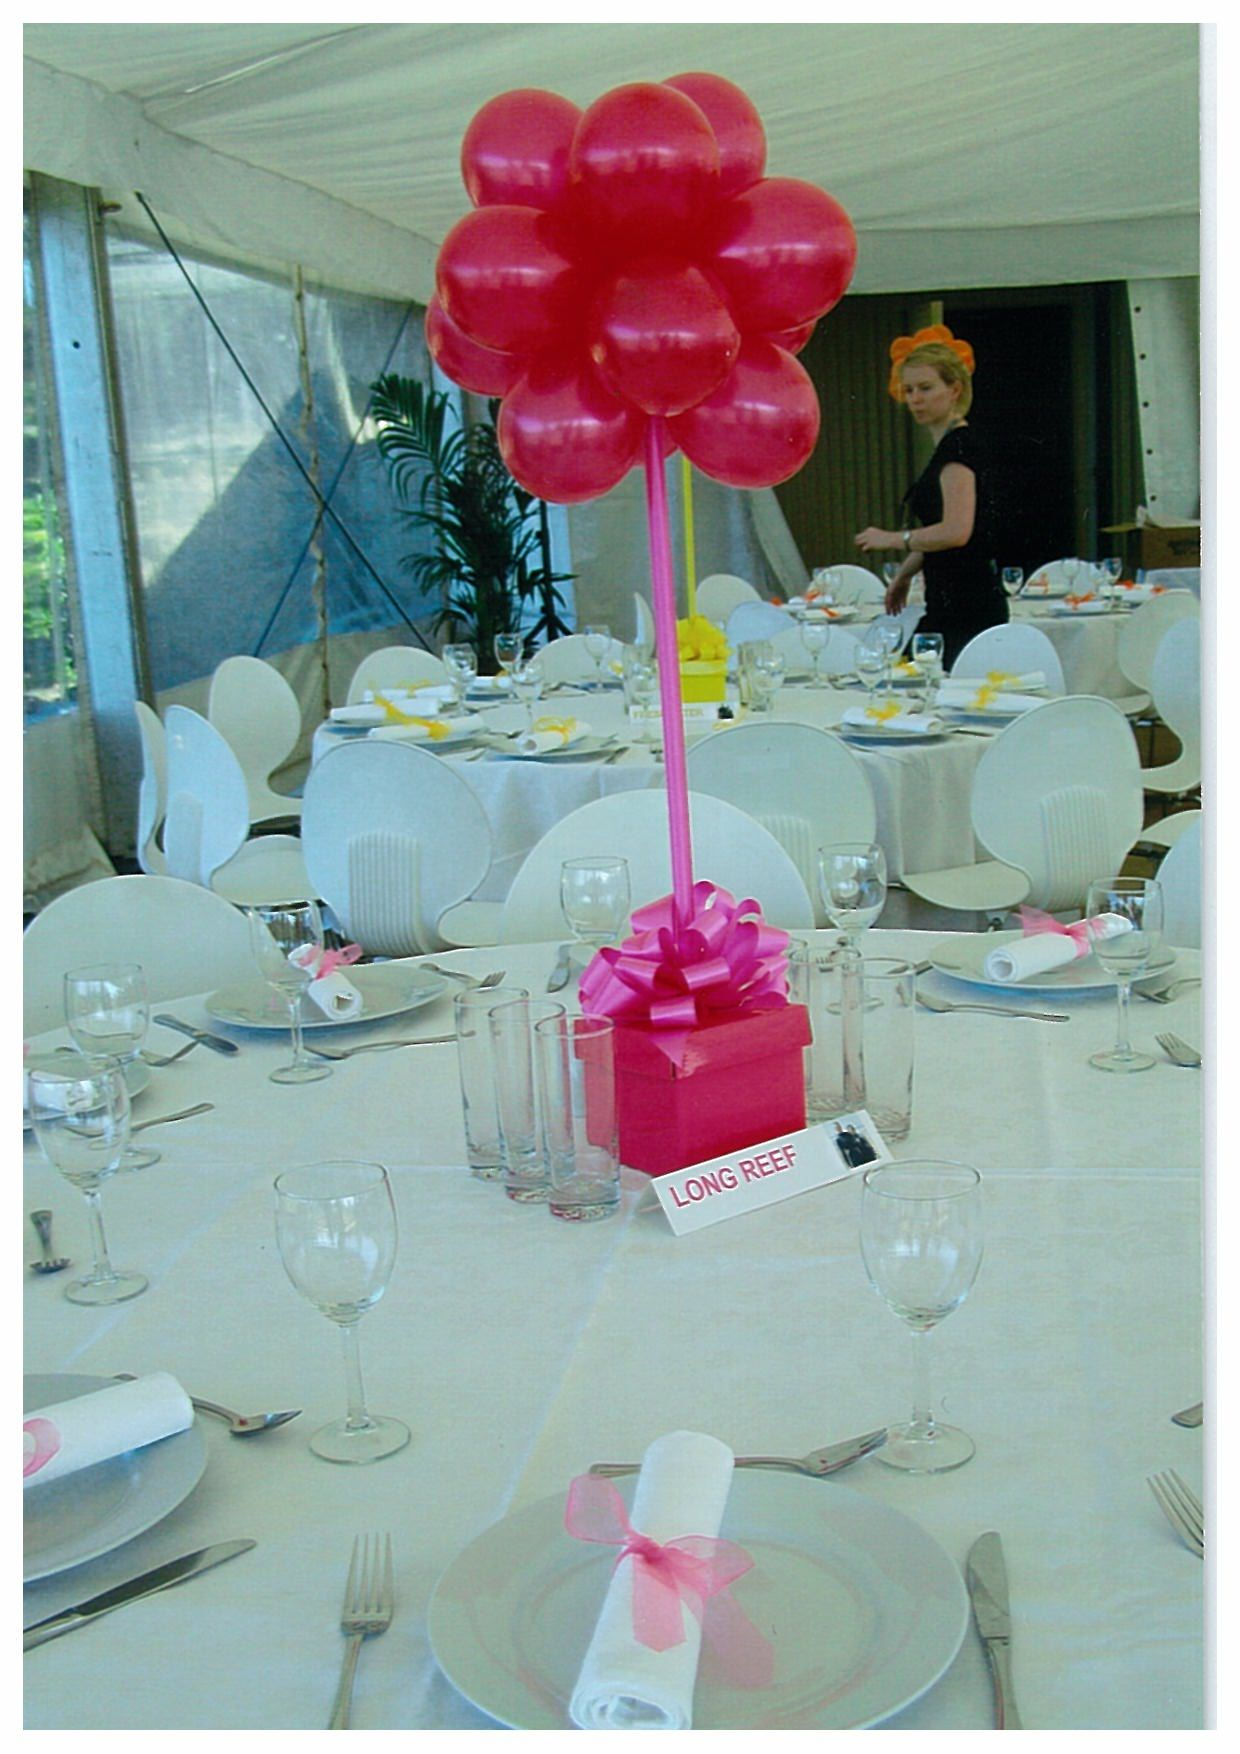 Centerpiece Ideas For Party : Balloon table centerpieces balloons and party